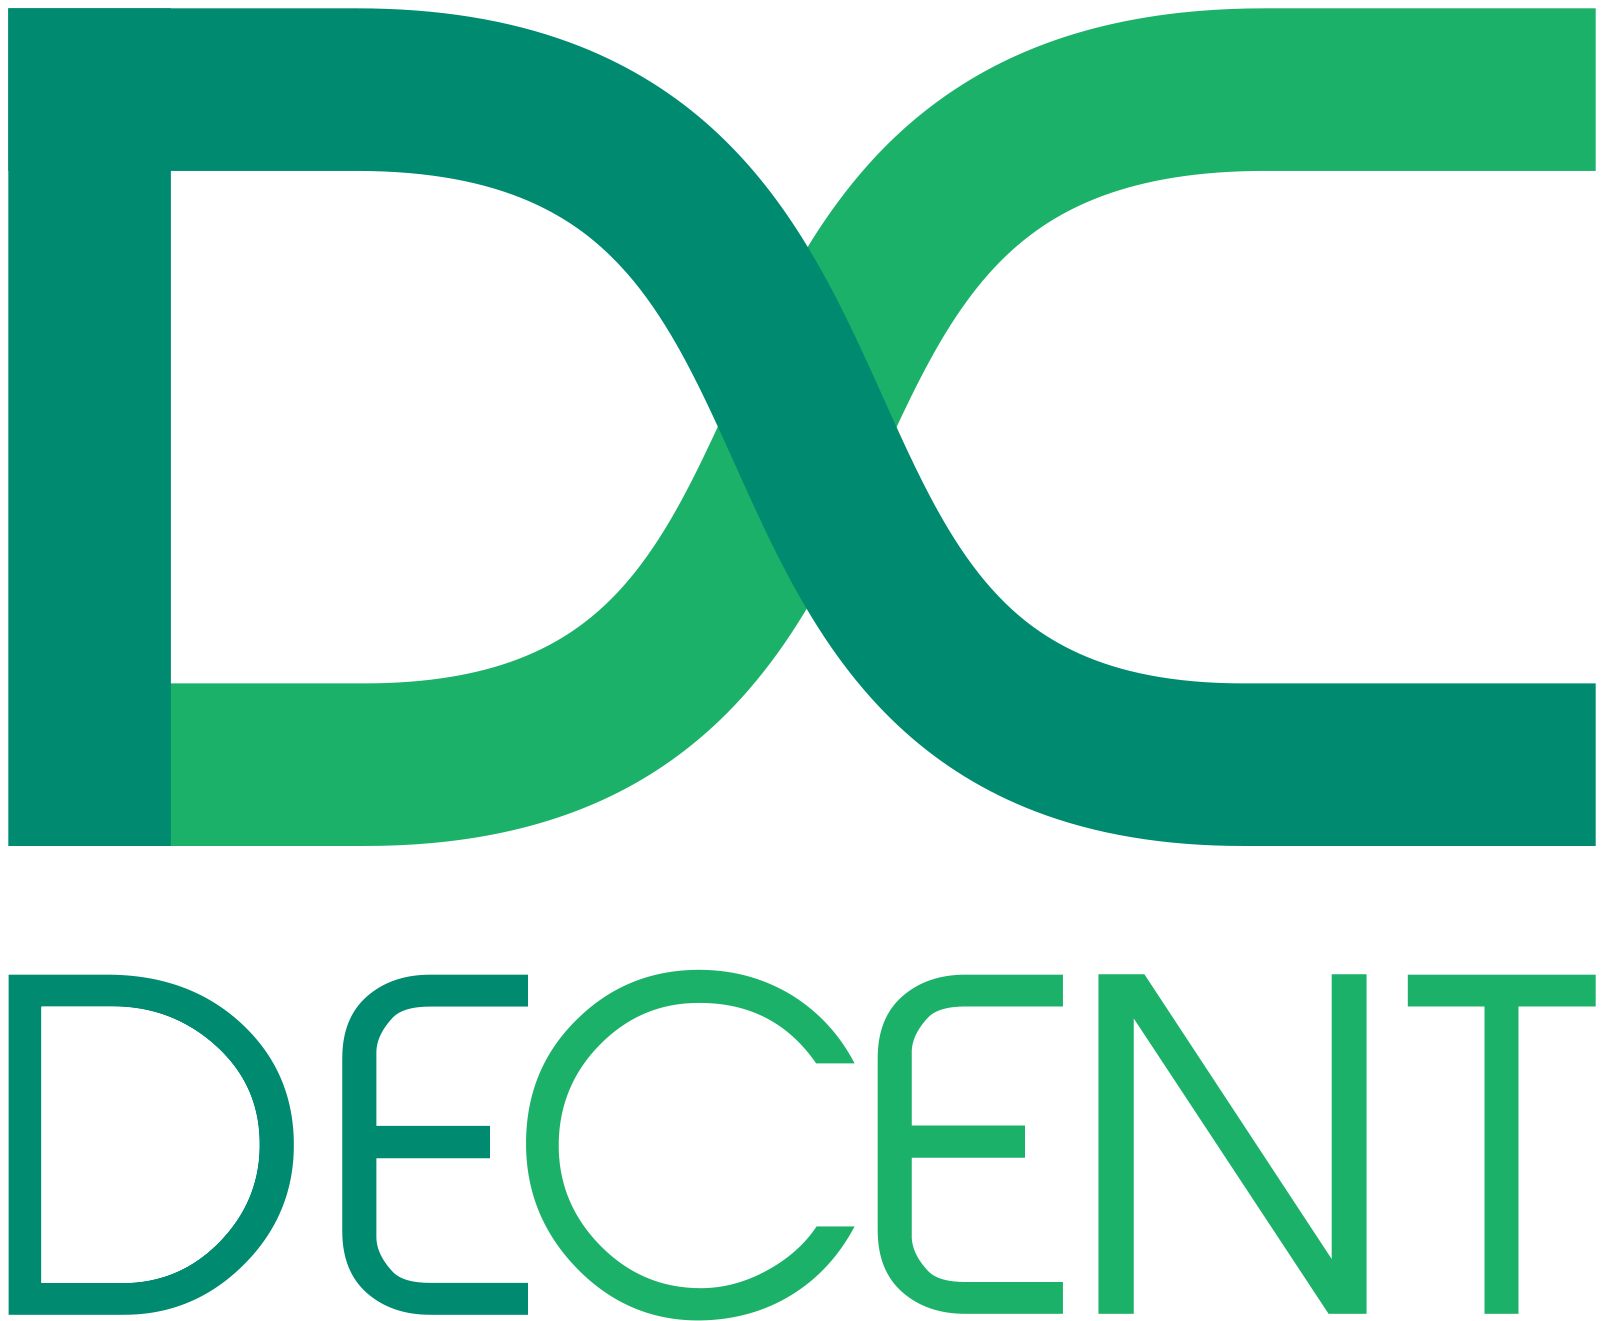 DECENT Coin logo